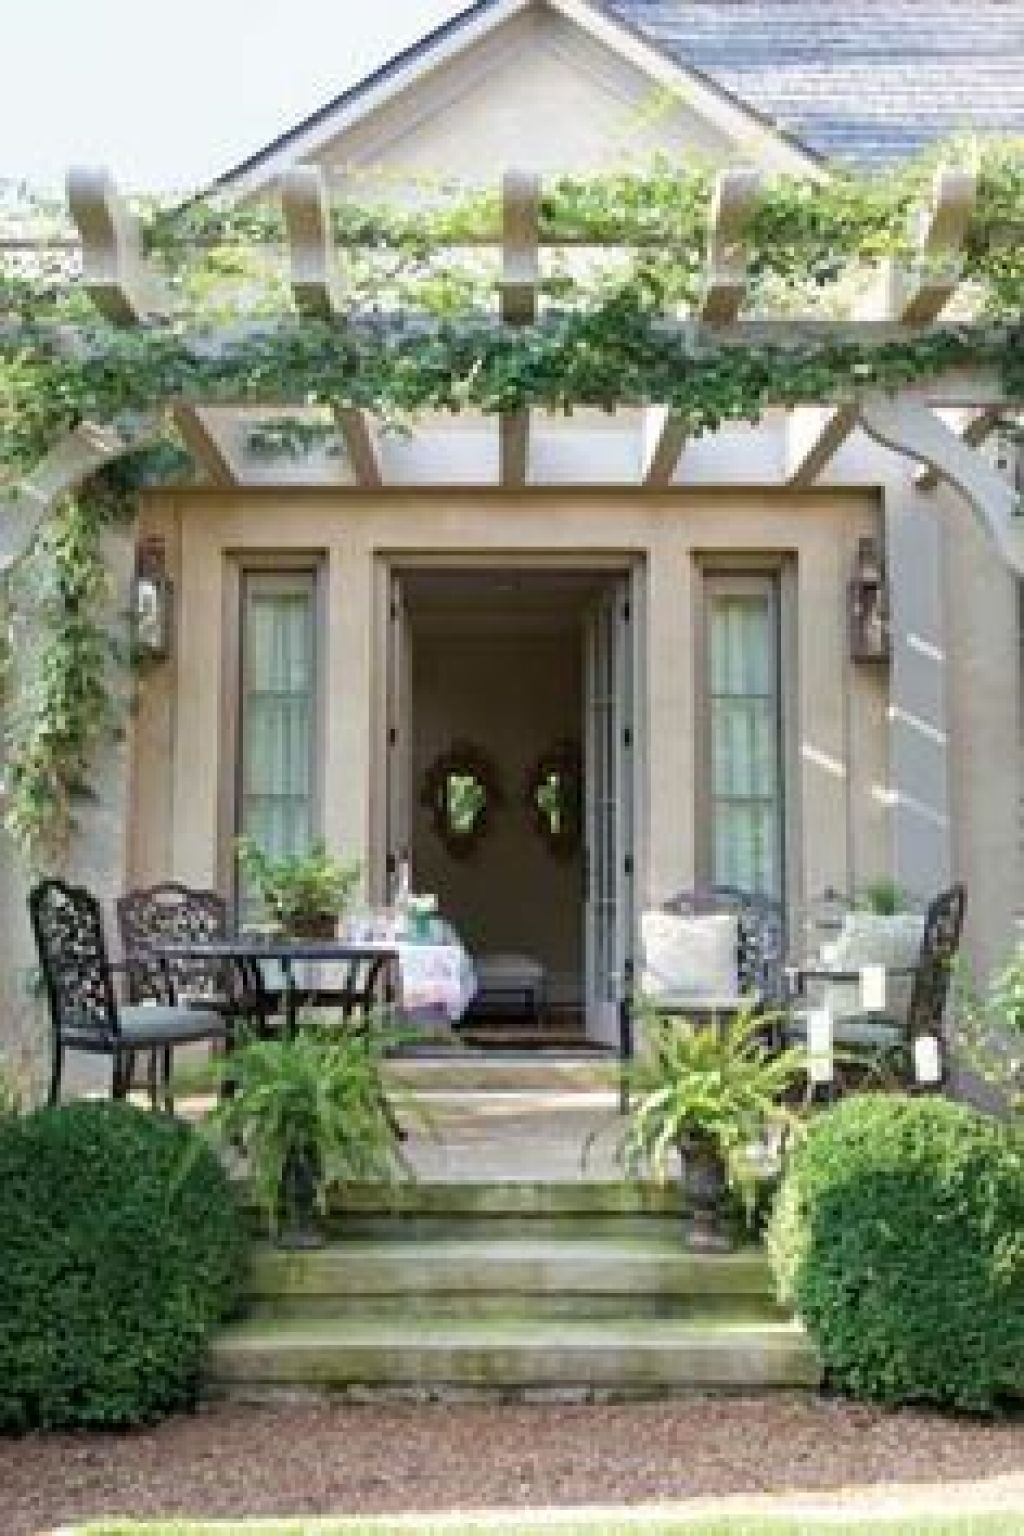 1000 ideas about front porch pergola on pinterest pergolas for Front porch plans free